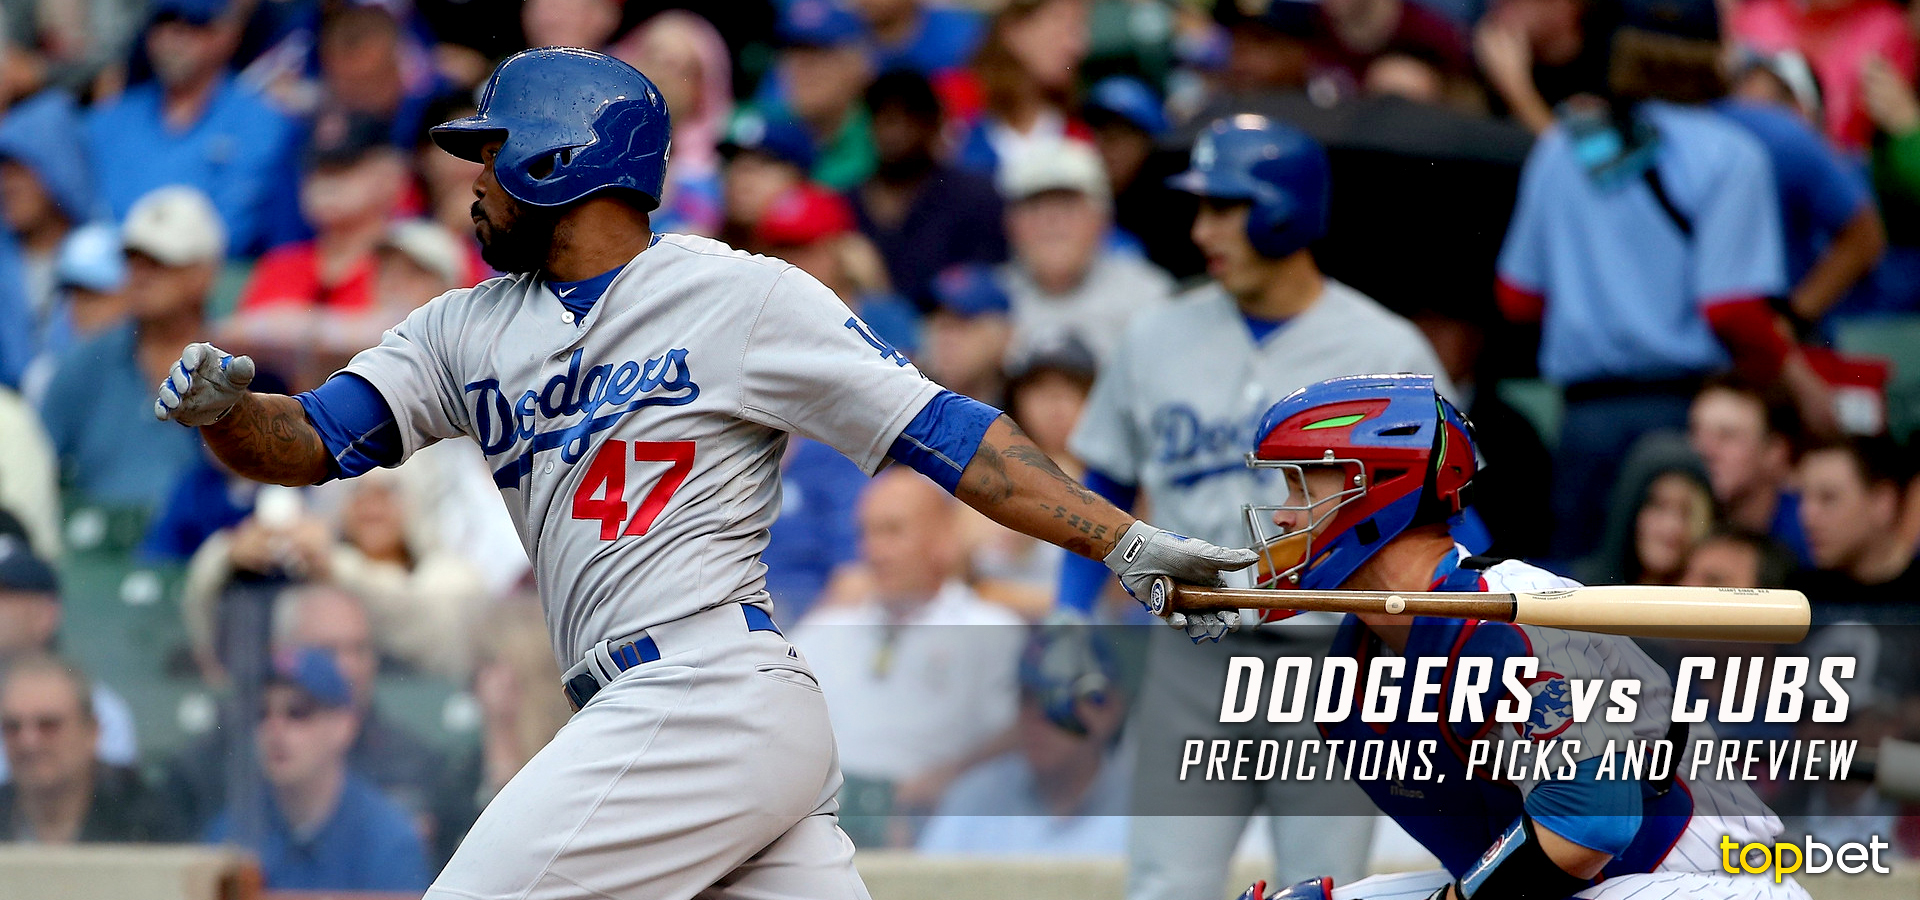 cubs vs dodgers tickets nascar betting odds